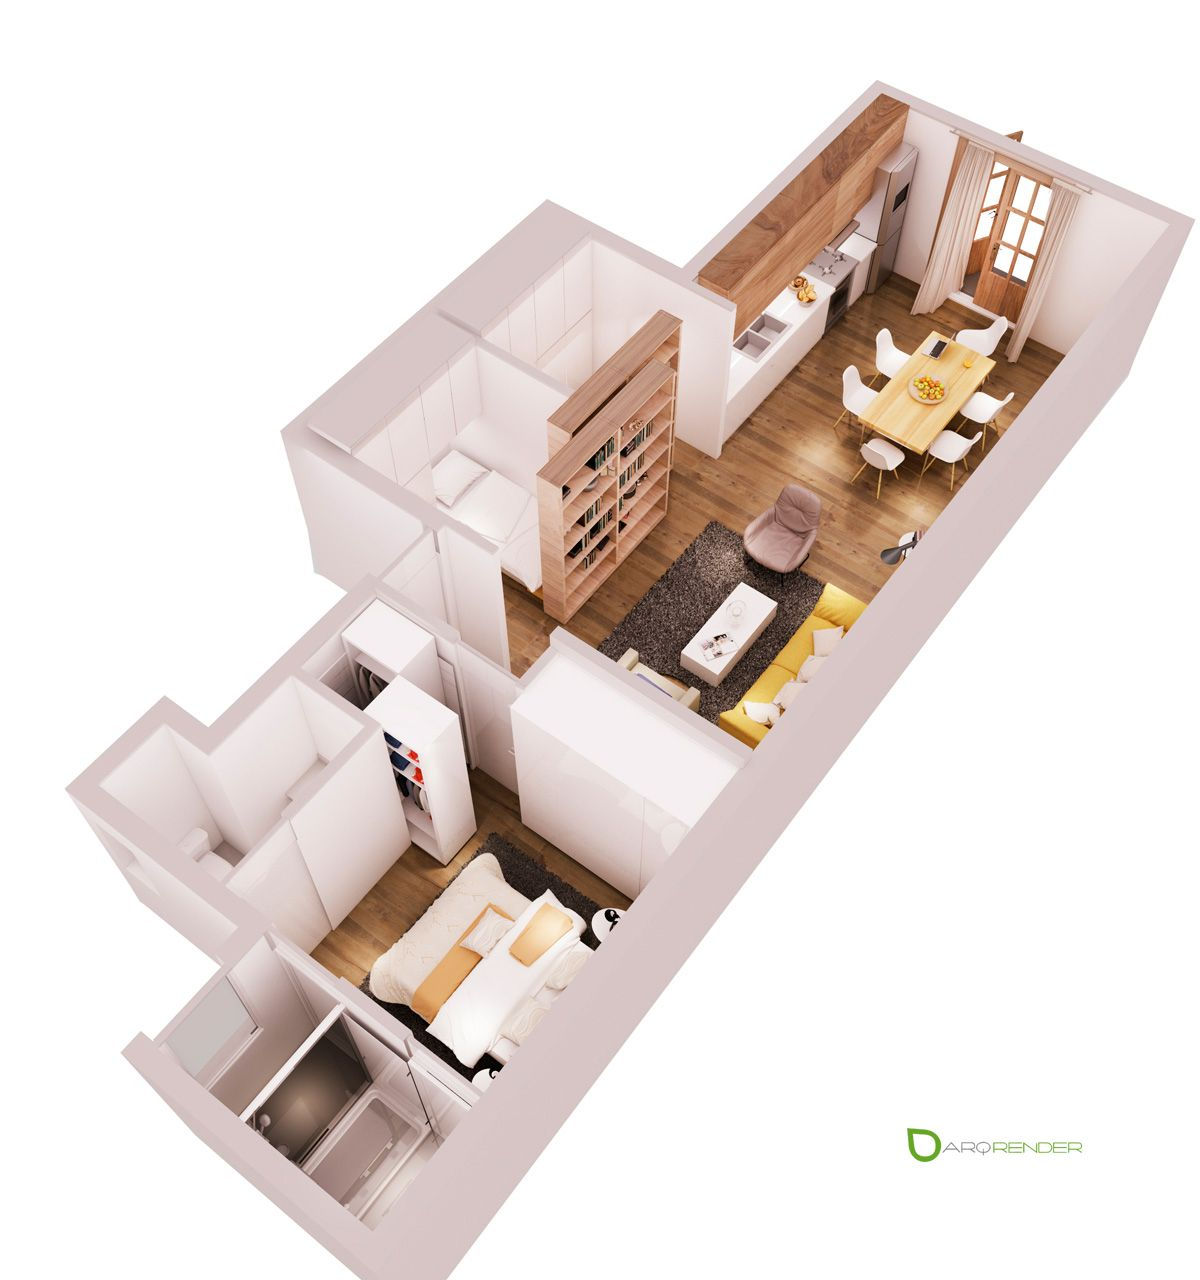 Small Apartments With Cheerful Colorful Accents Tiny House Design Apartment Interior Design Small House Design